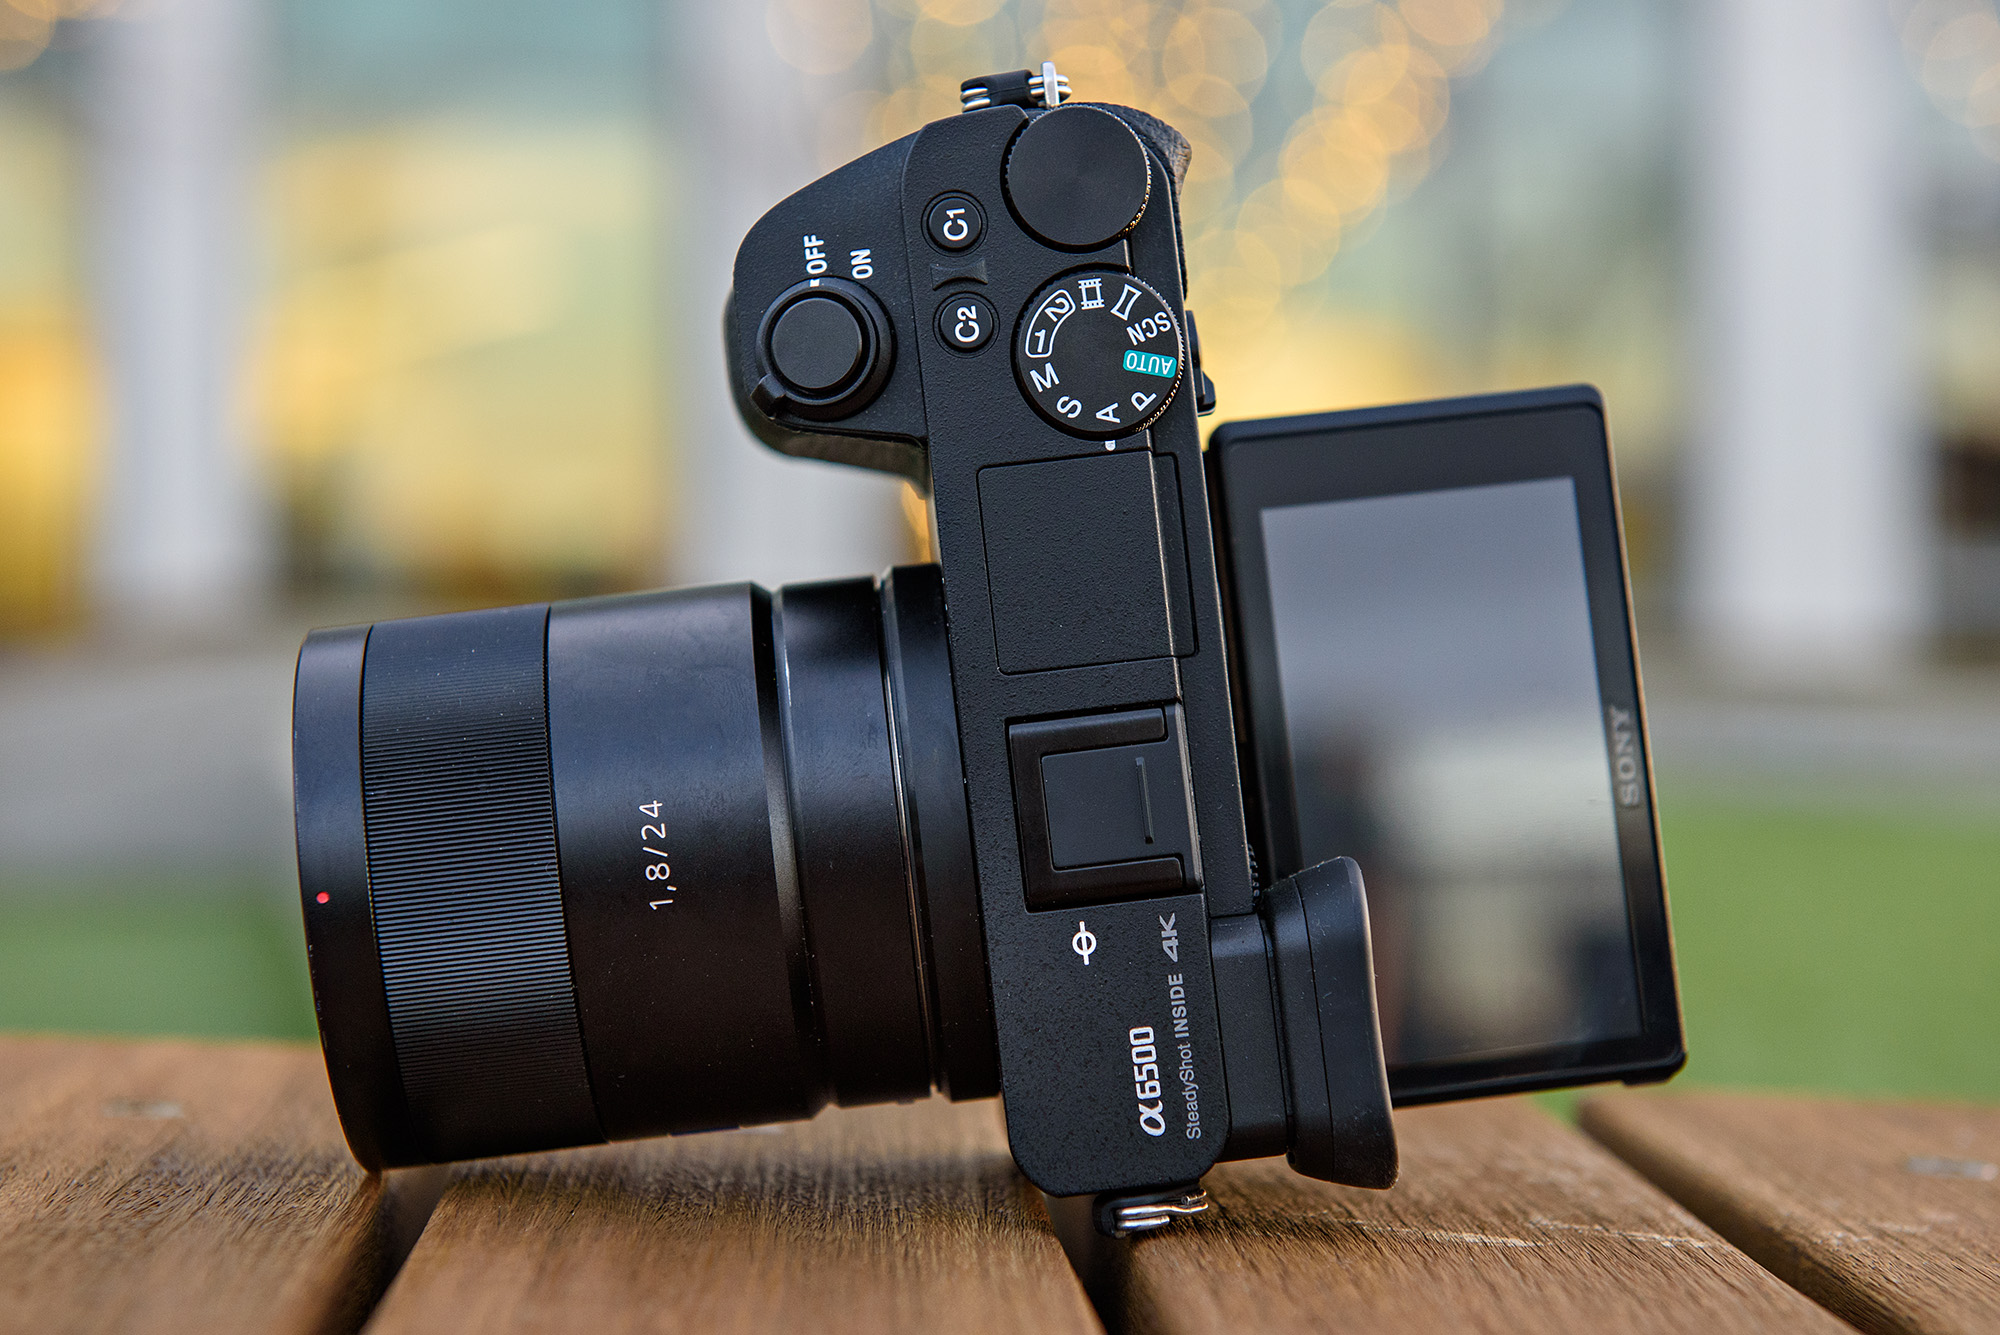 Sony a6500 firmware update improves image stabilization in